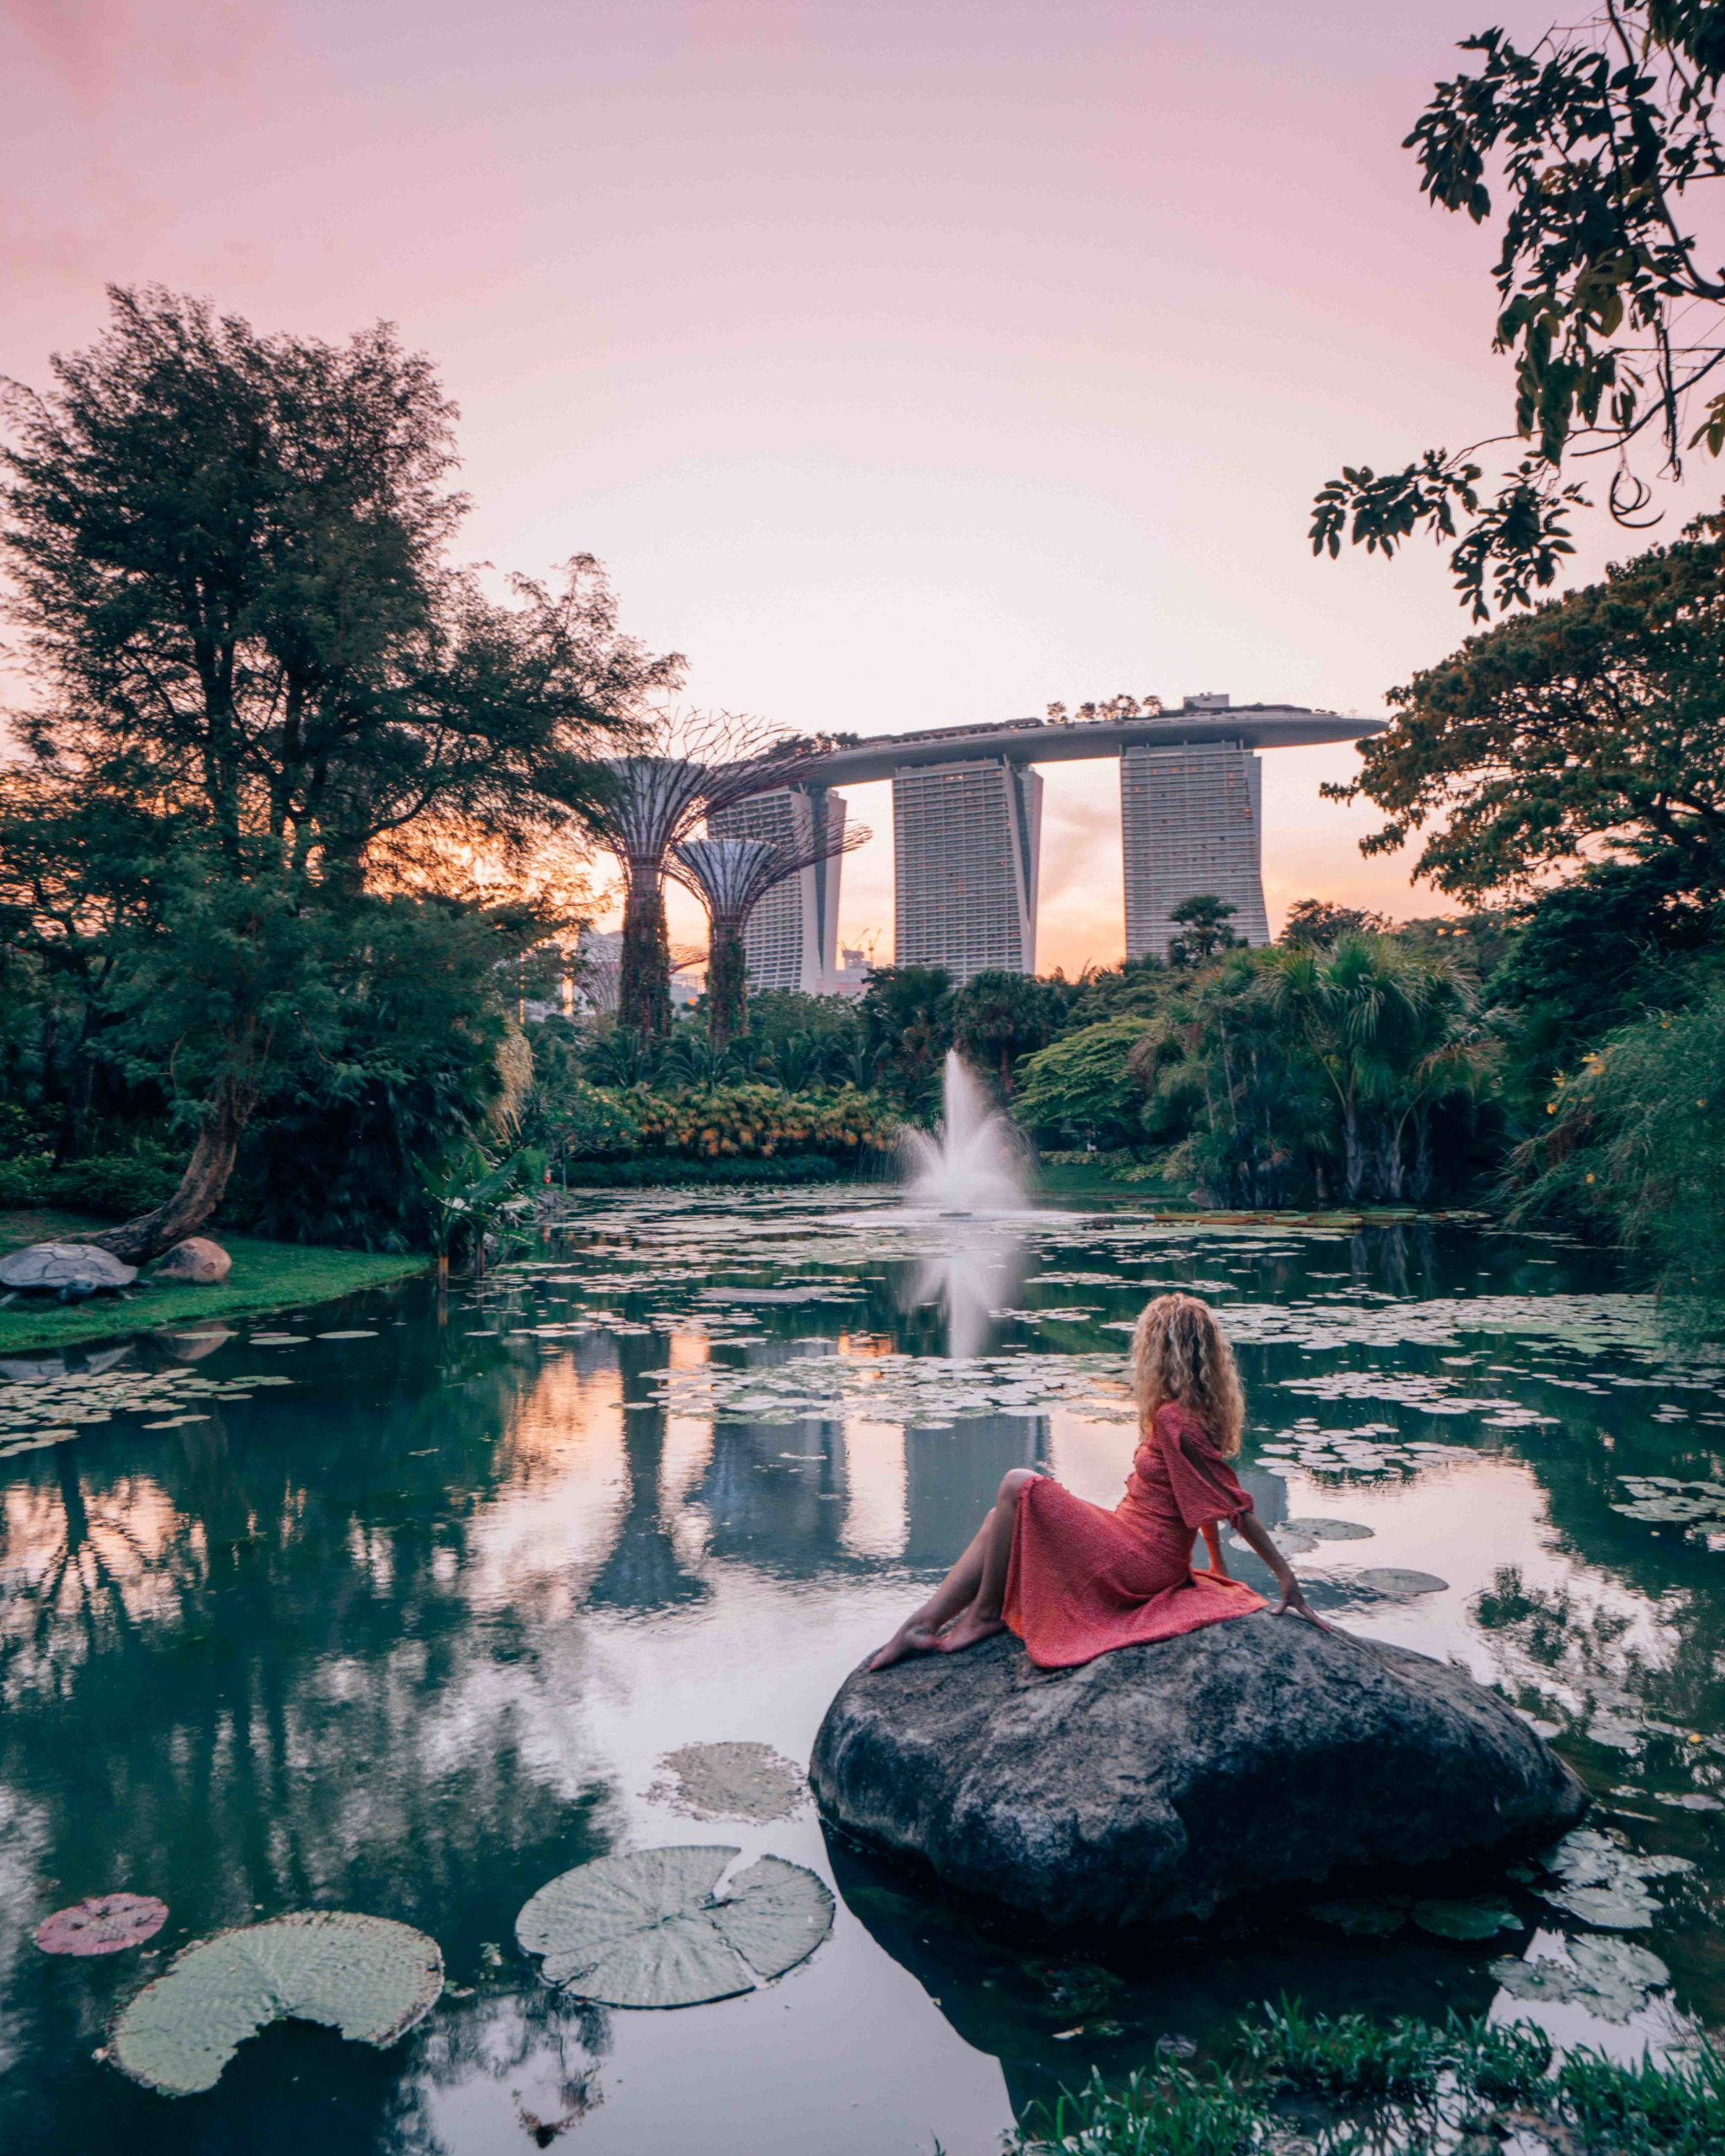 Water lily pond in Gardens by the Bay, insta spot in Singapore